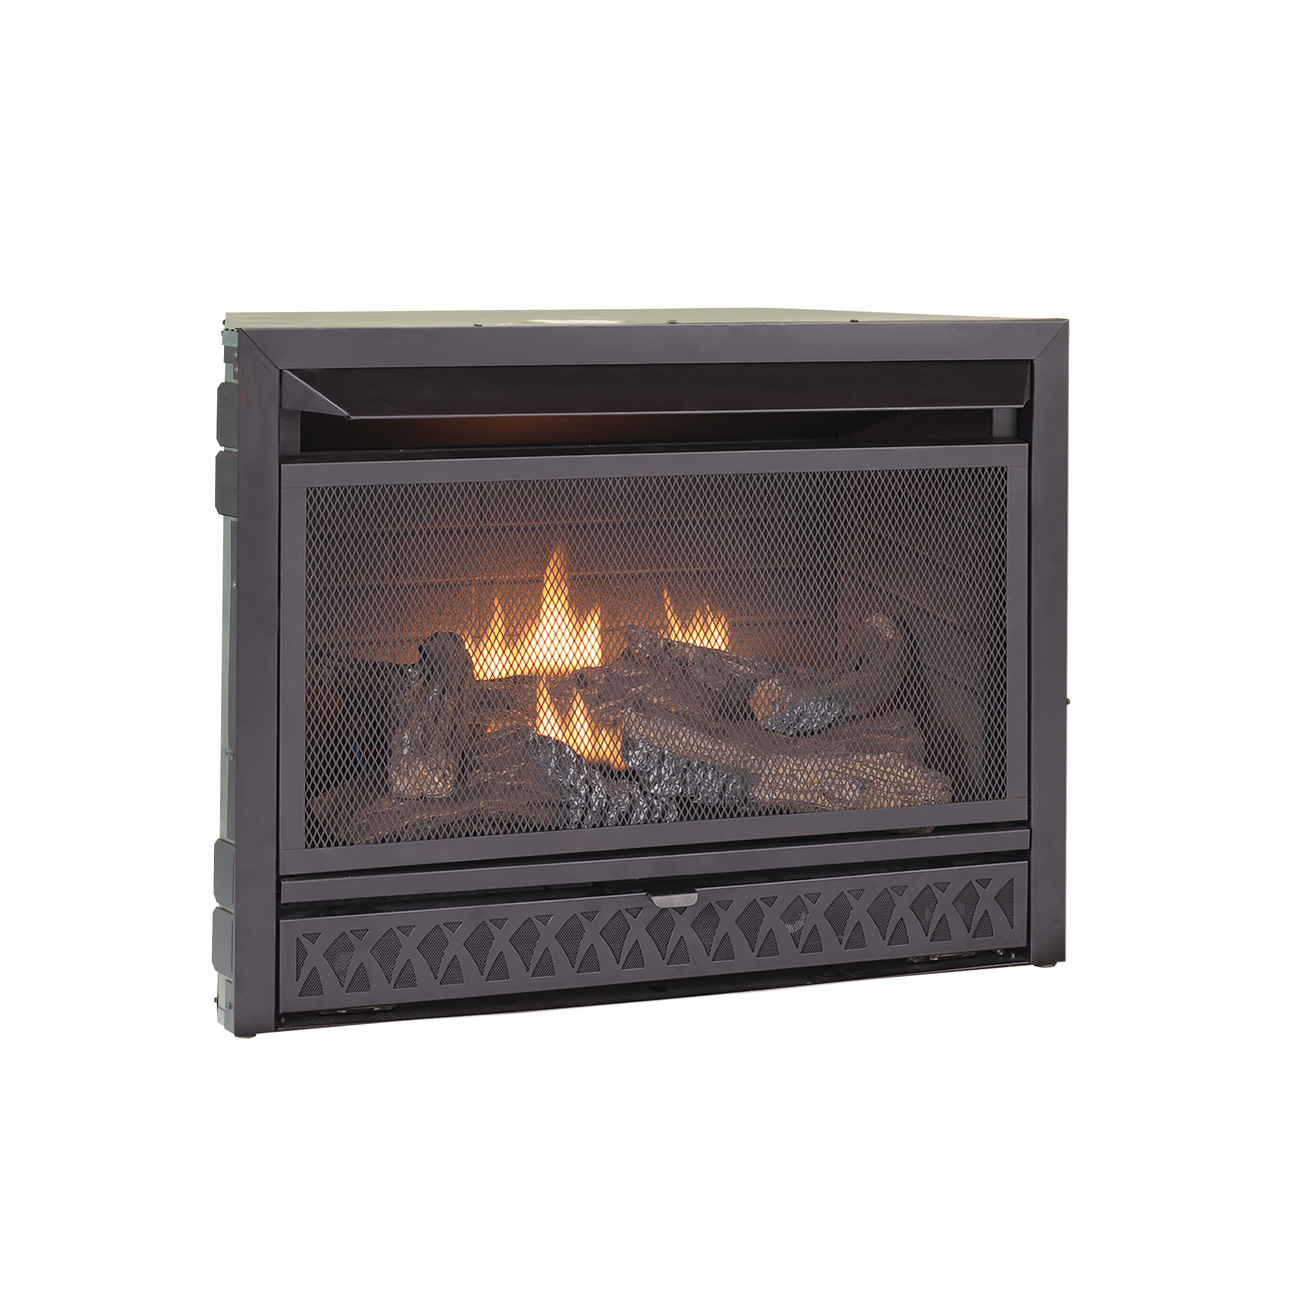 Ventless Fireplace Insert Model Fbd28t